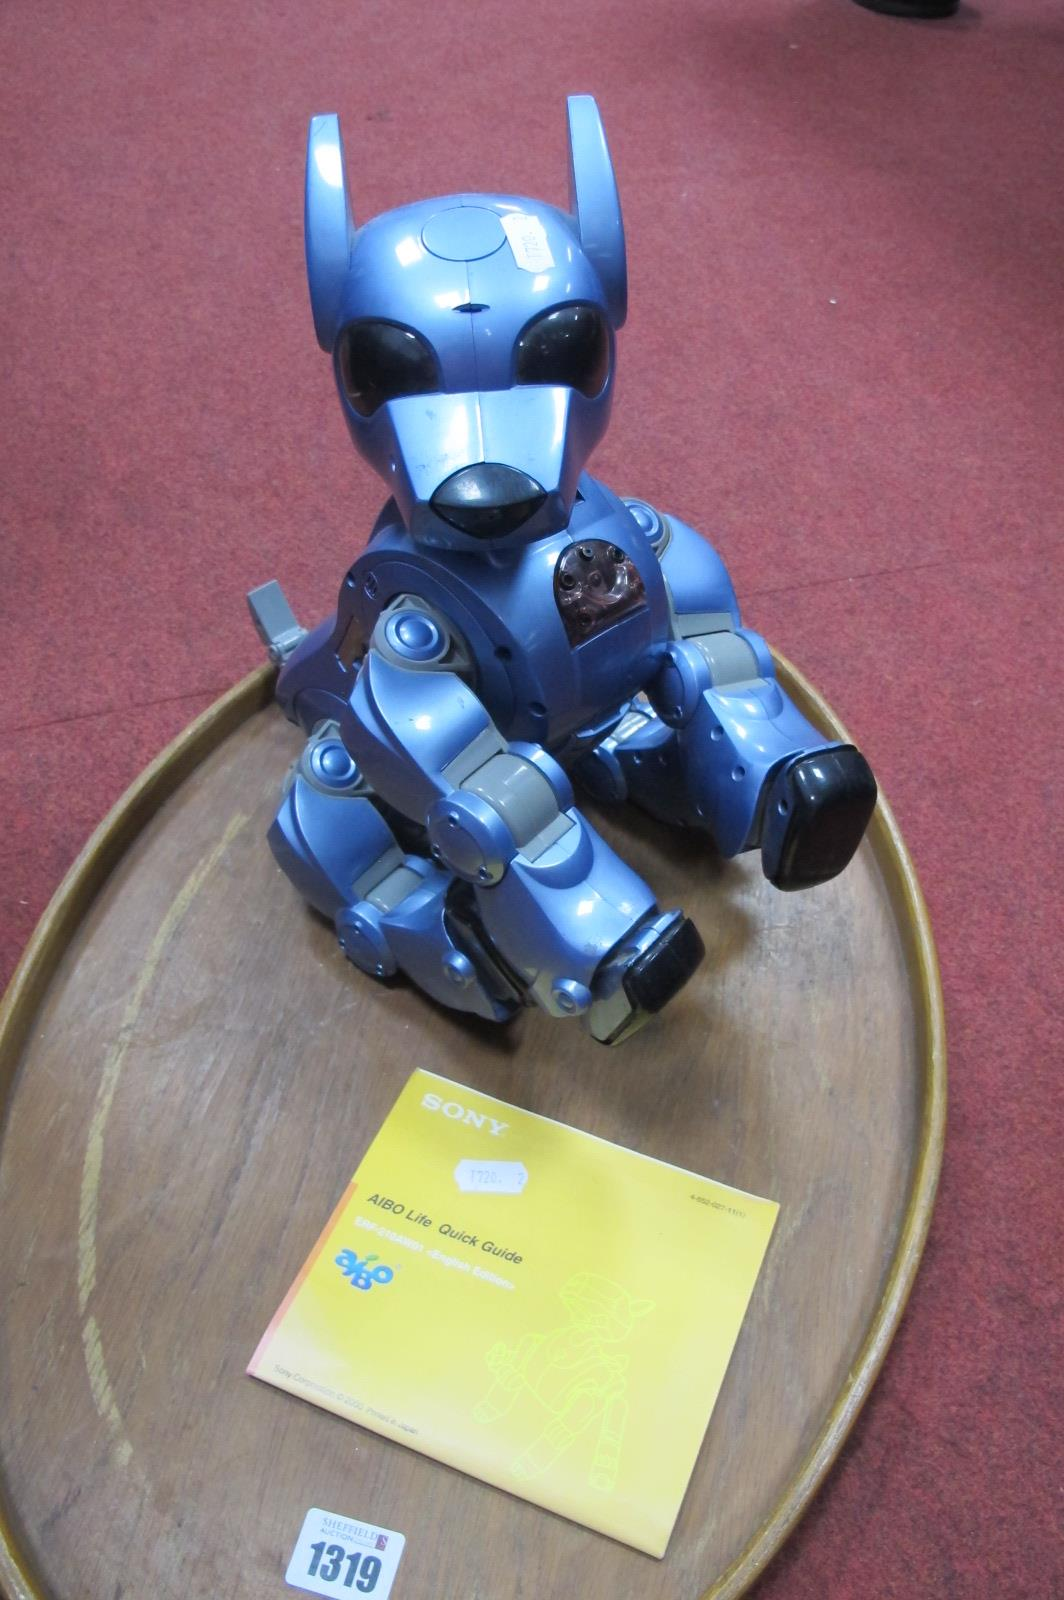 Sony Aibo Life ERF.210AW01 Entertainment Robot, stamp under base 'Tiger', 'Silverit', C760A in a